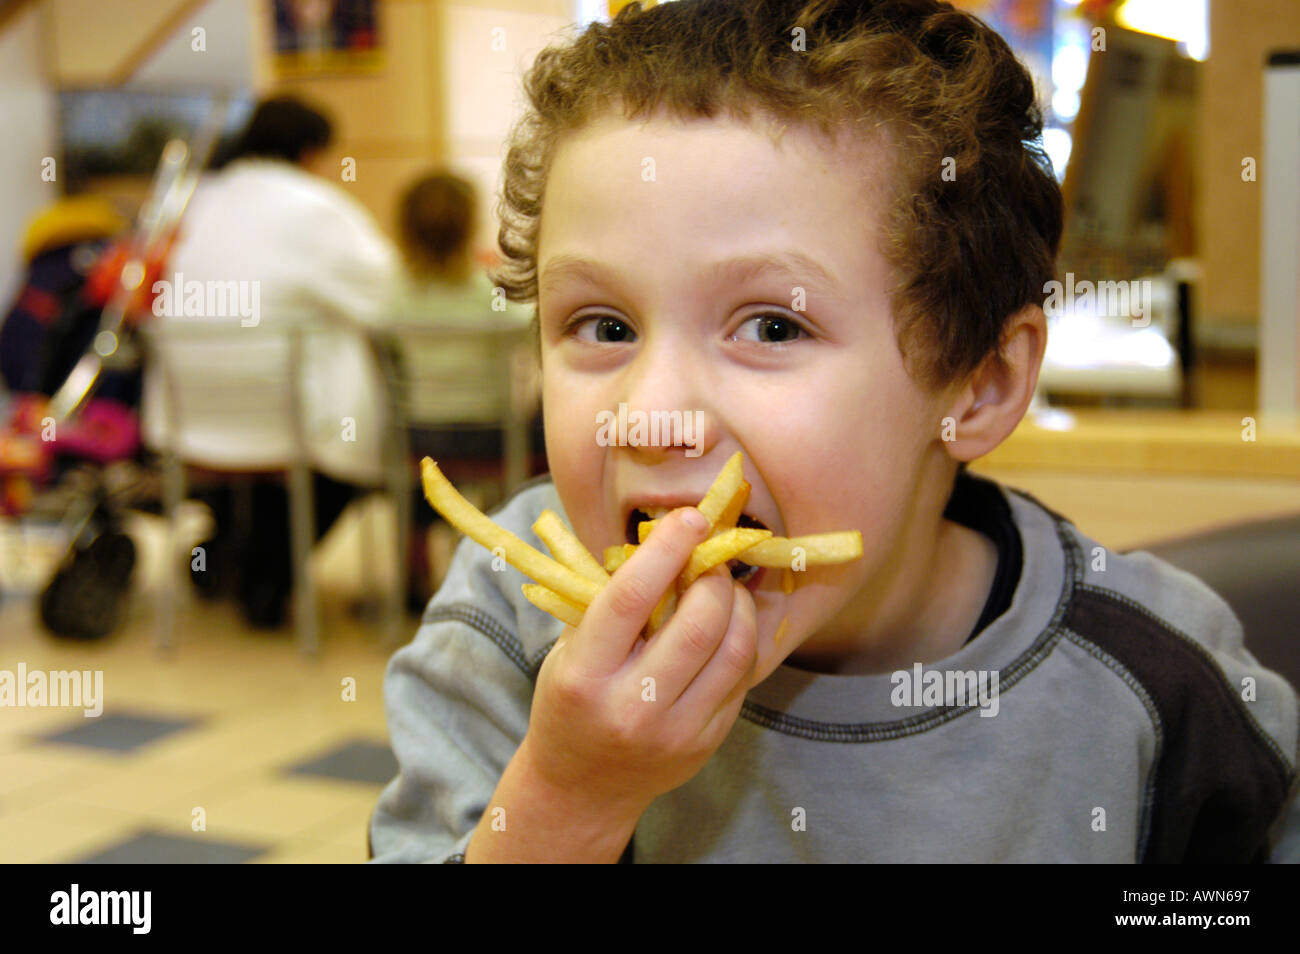 junk food and kids uk stock photos junk food and kids uk stock small boy eating mcdonald s french fries england uk stock image